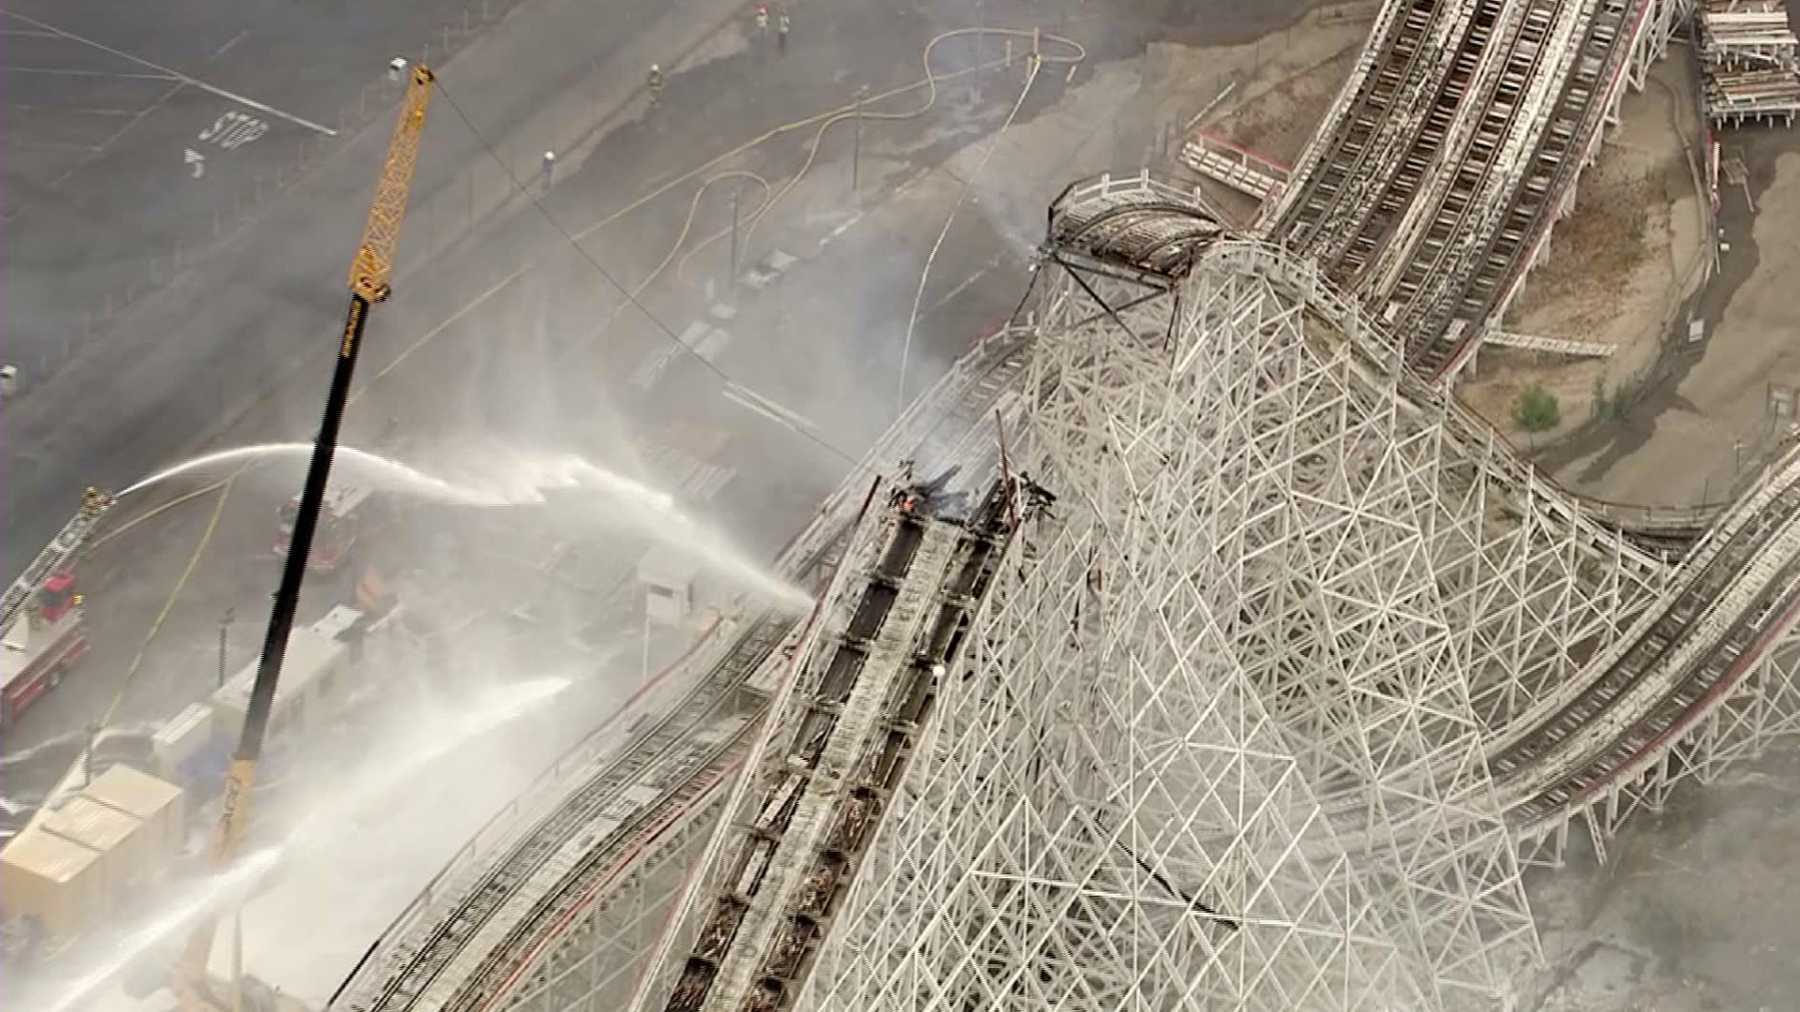 Colossus Rollercoaster At Six Flags Magic Mountain Damaged In Fire | colossus